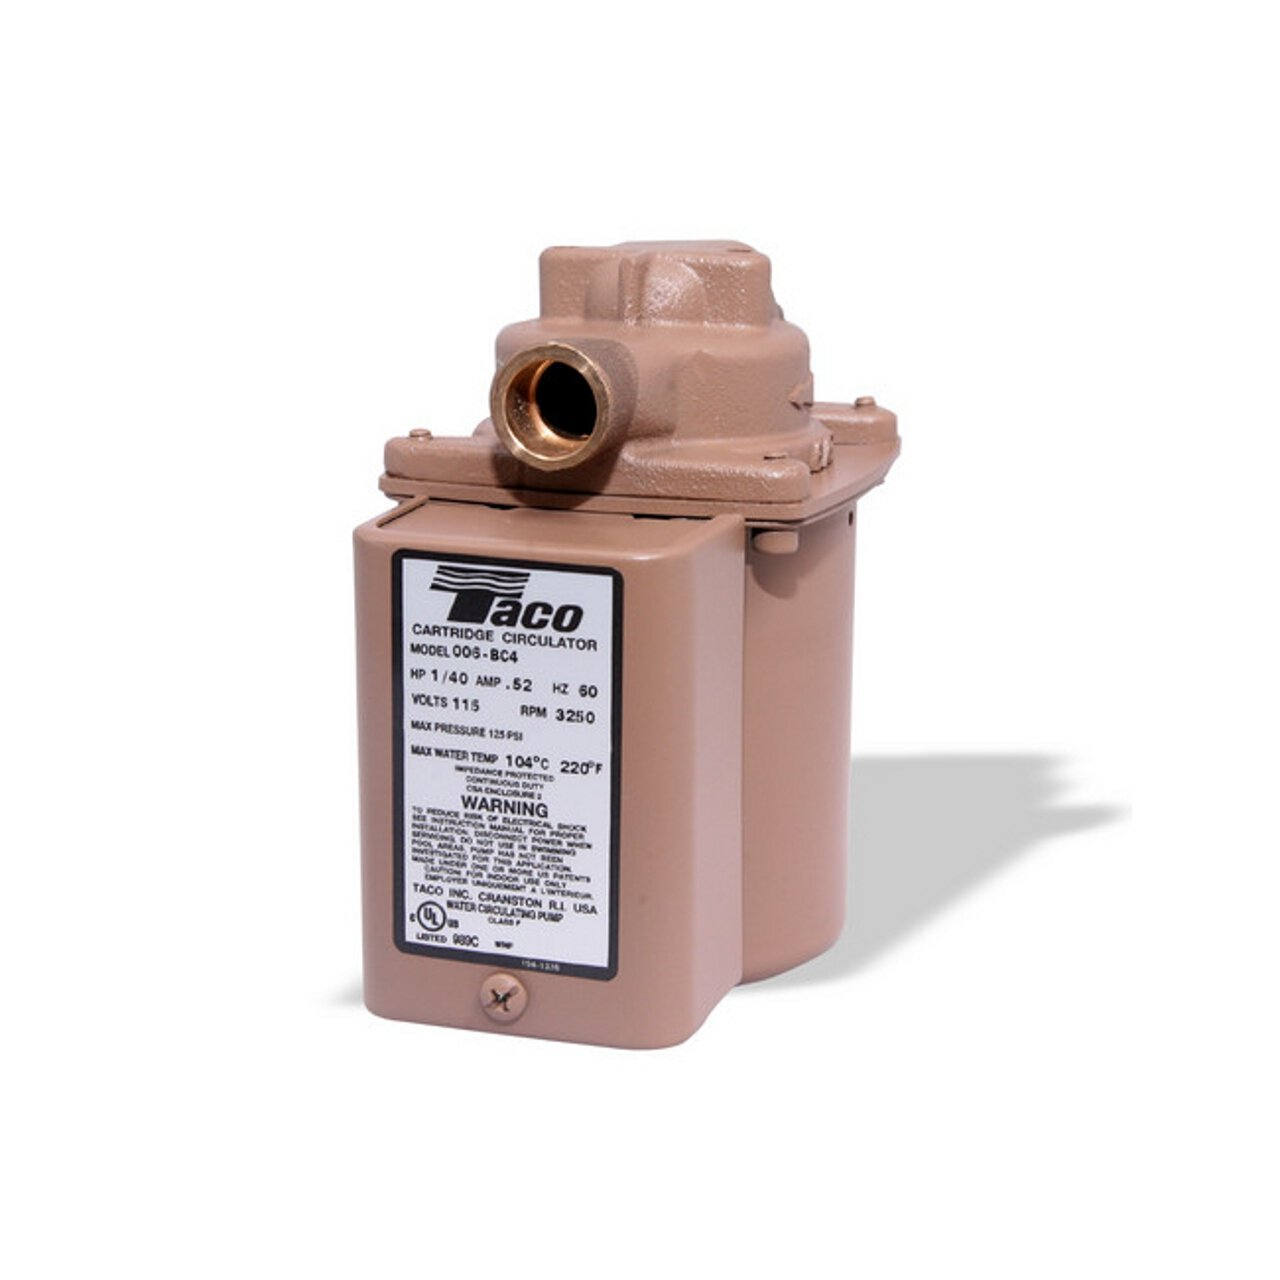 Taco 006-BC4 Bronze Cartridge Circulating Pump by Taco